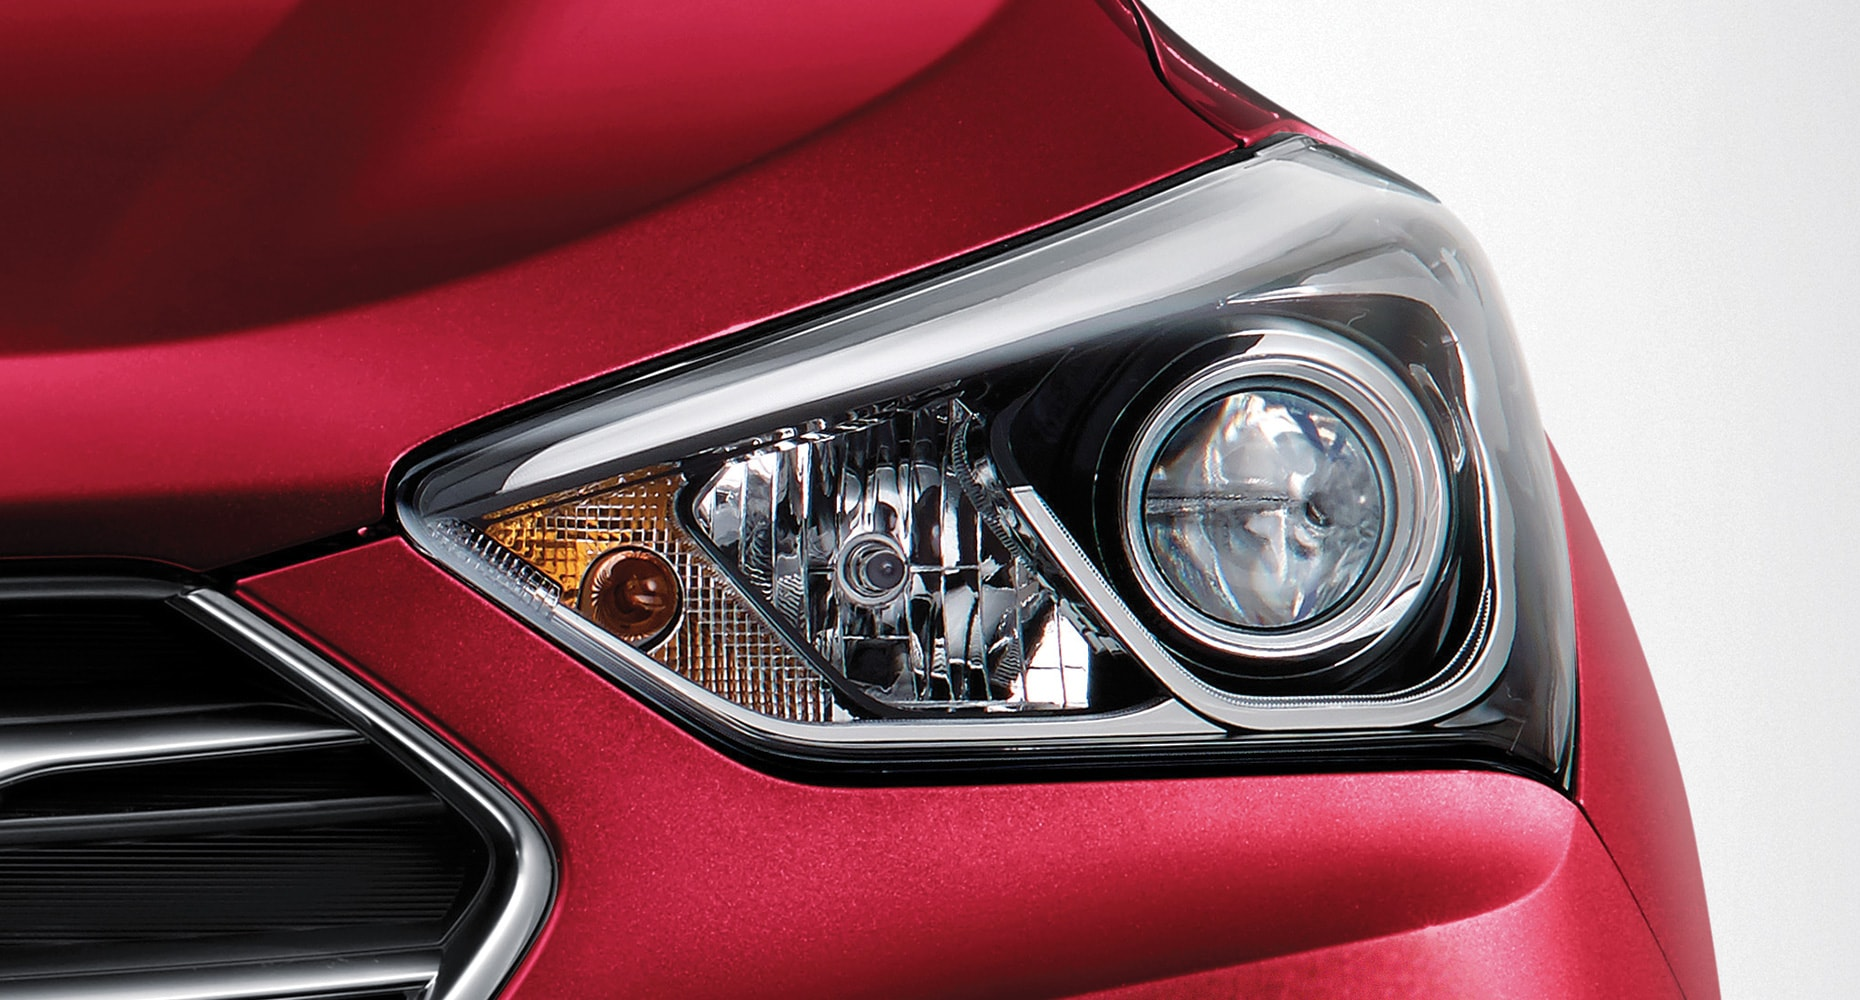 Hyundai Santa Fe Sport 2018 Spacious Luxury Suv Canada Auto Lighting System Diagram 2017 Best Cars Reviews Hid Headlights With Adaptive Cornering And High Beam Assist